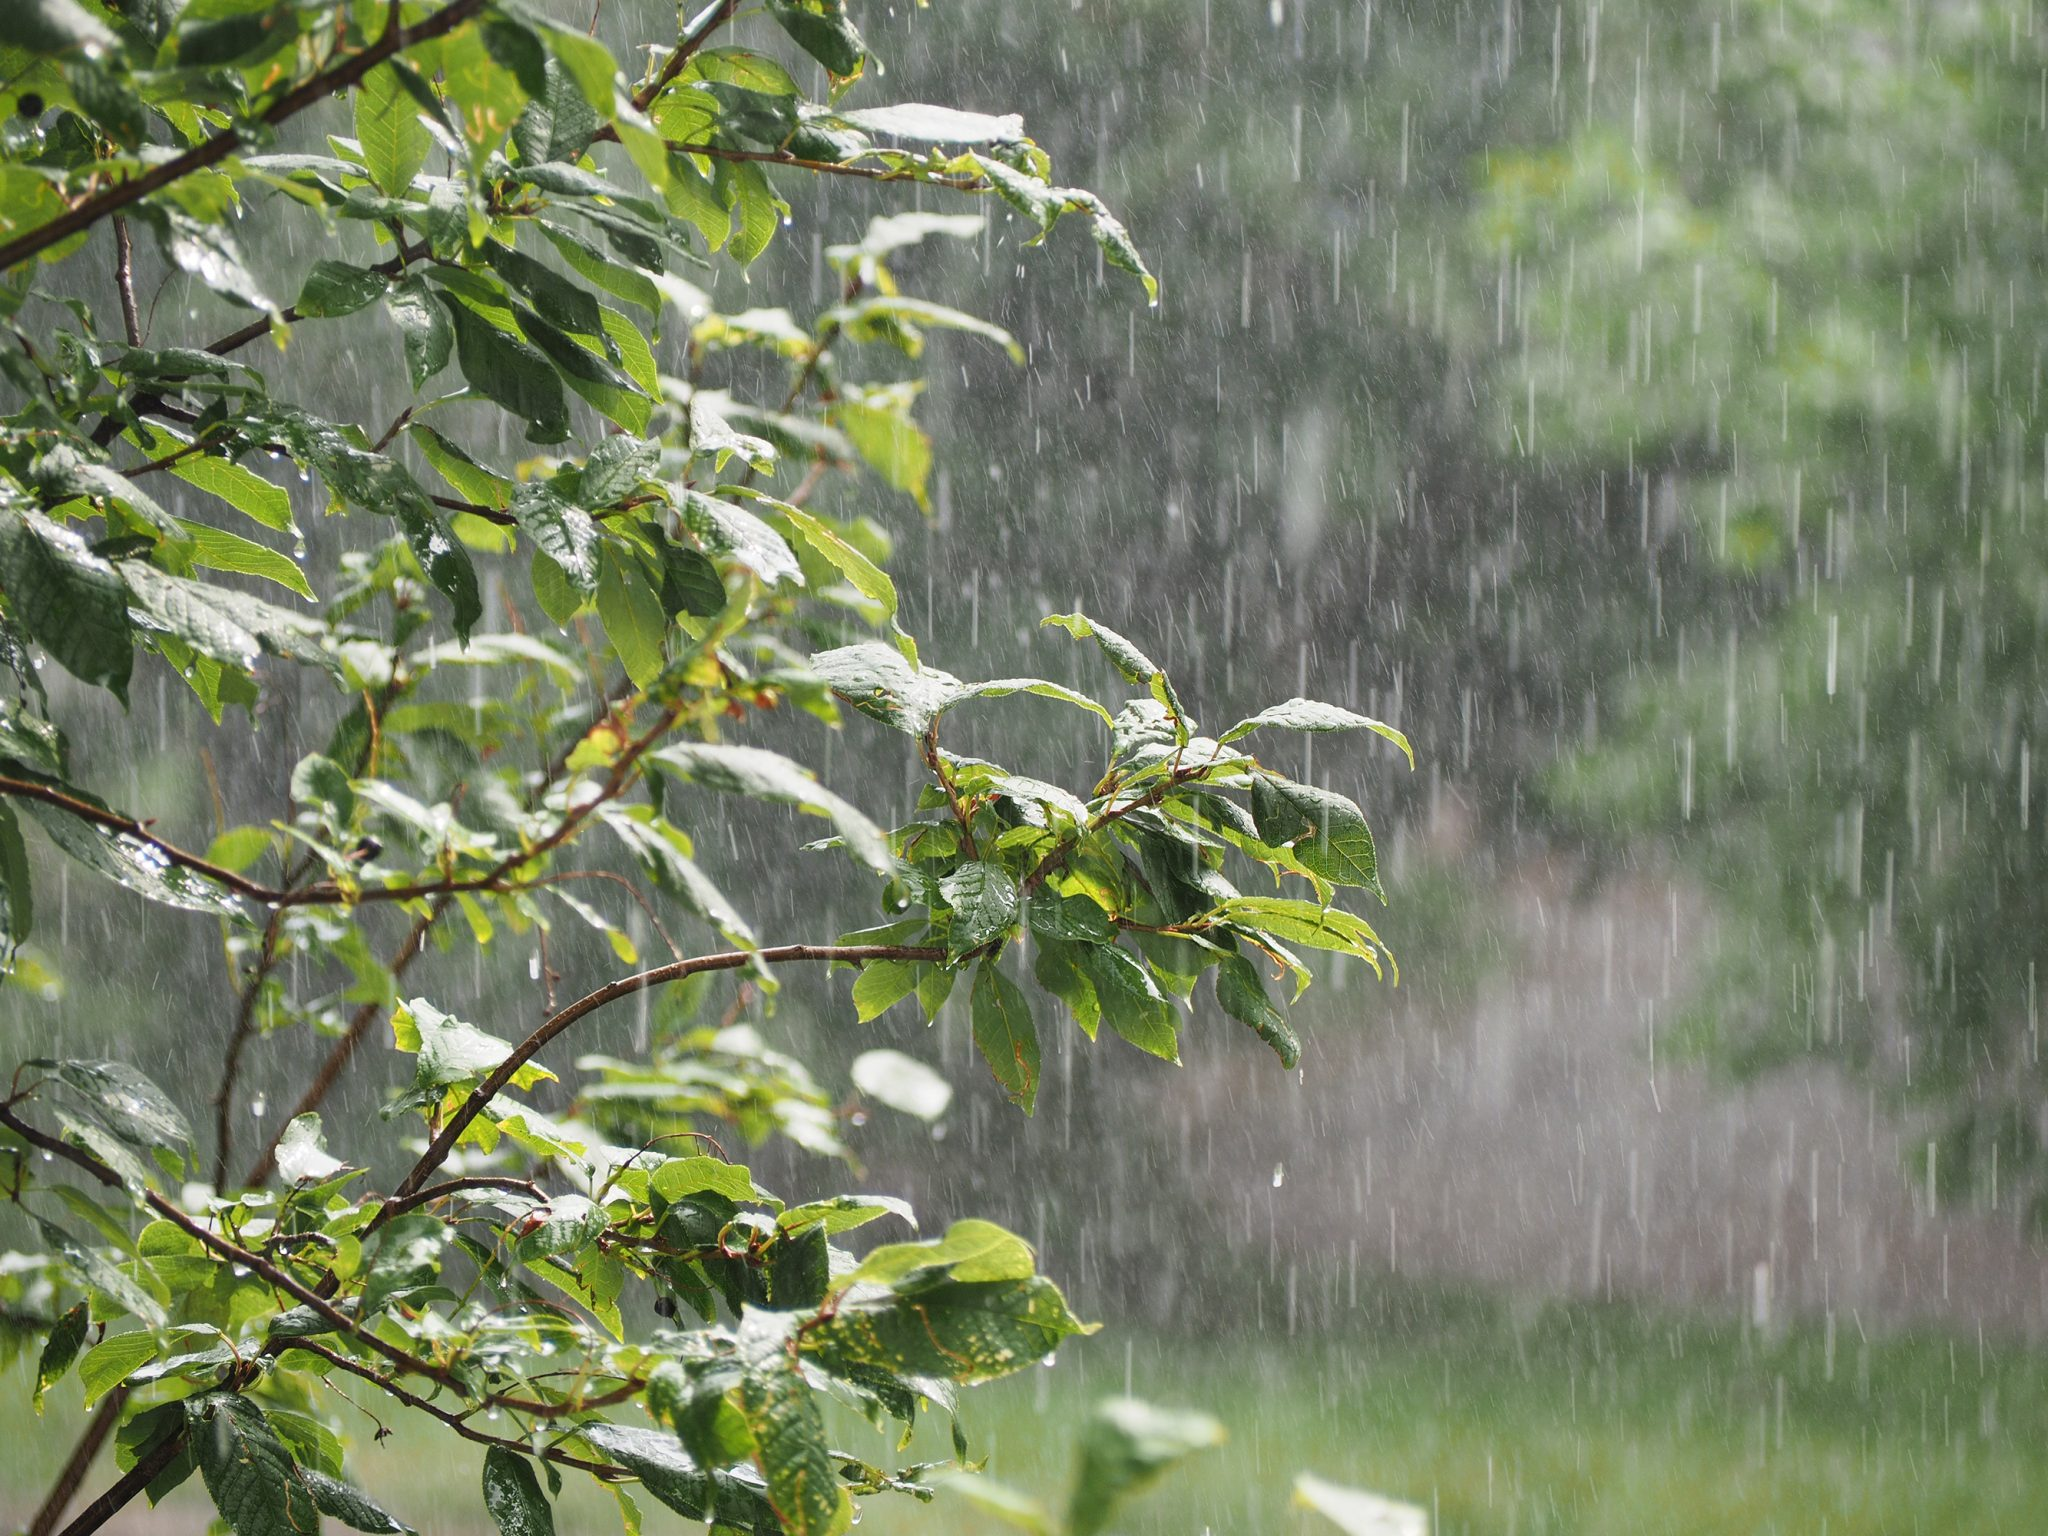 Rain shower in the garden. Downpour, pouring rain in the summer